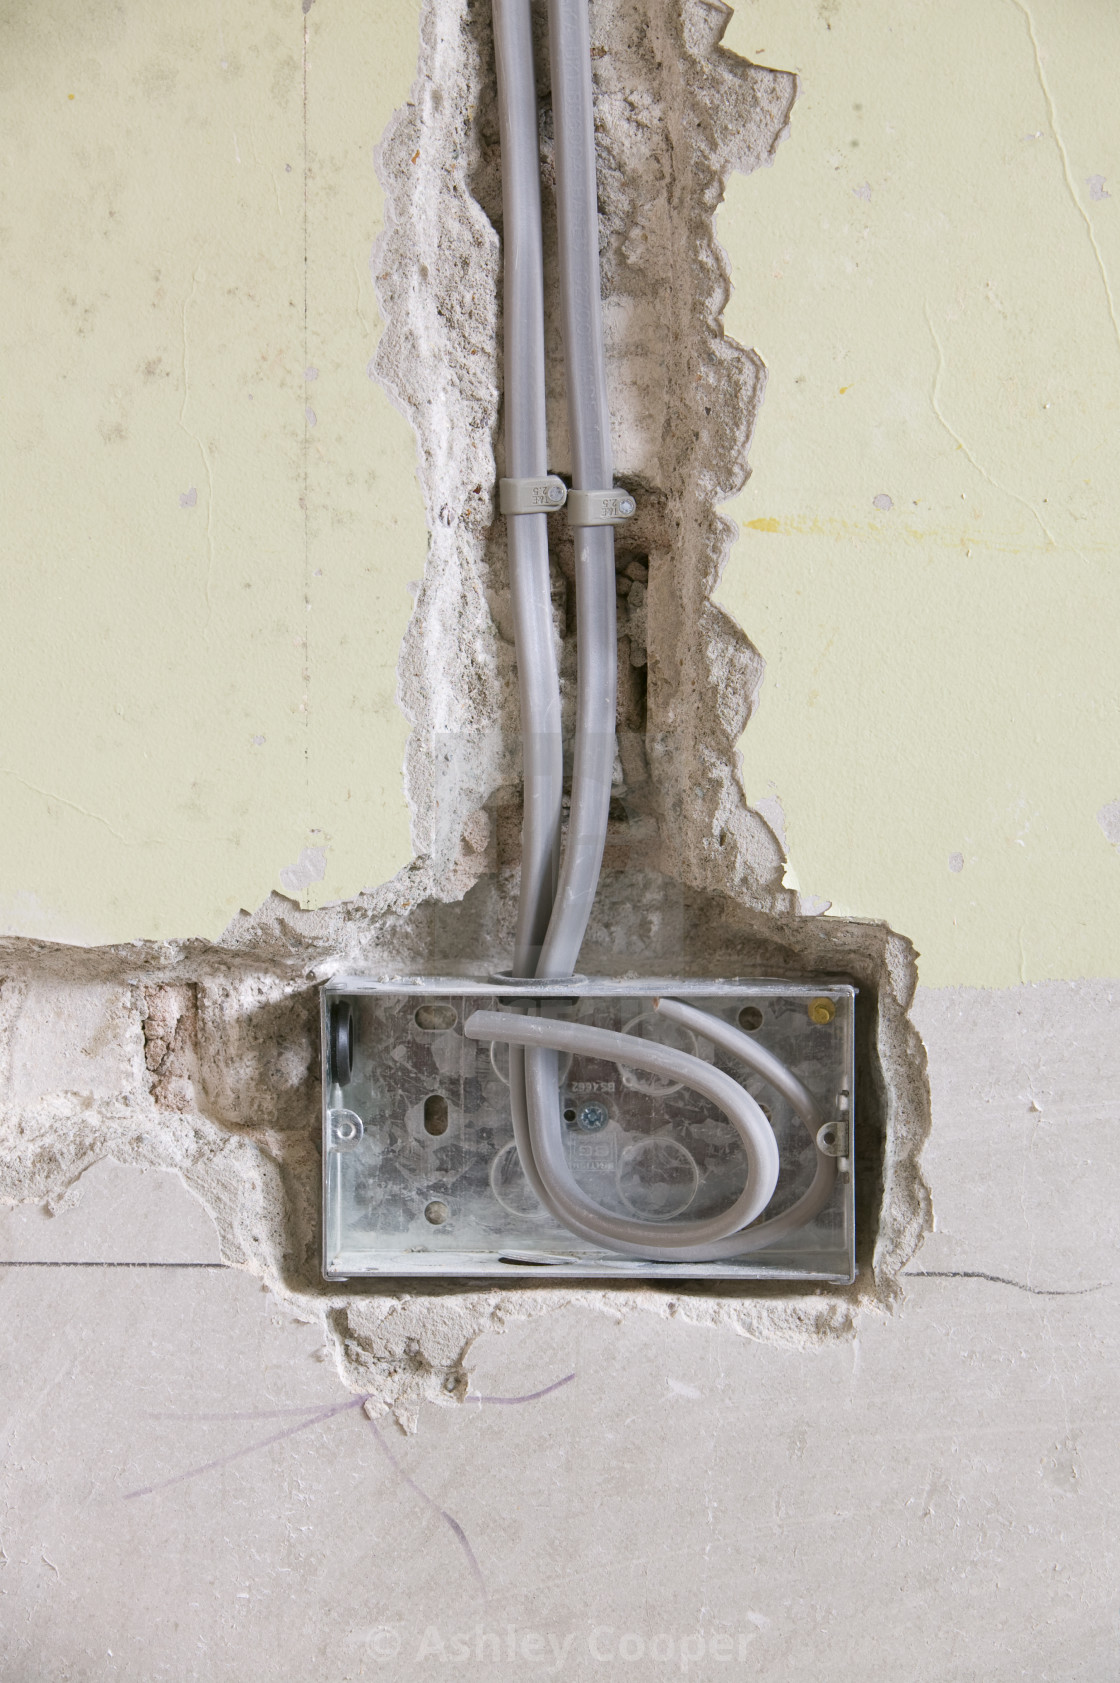 Wiring A Plug Socket Into House Wall Uk License For 3720 On Stock Image